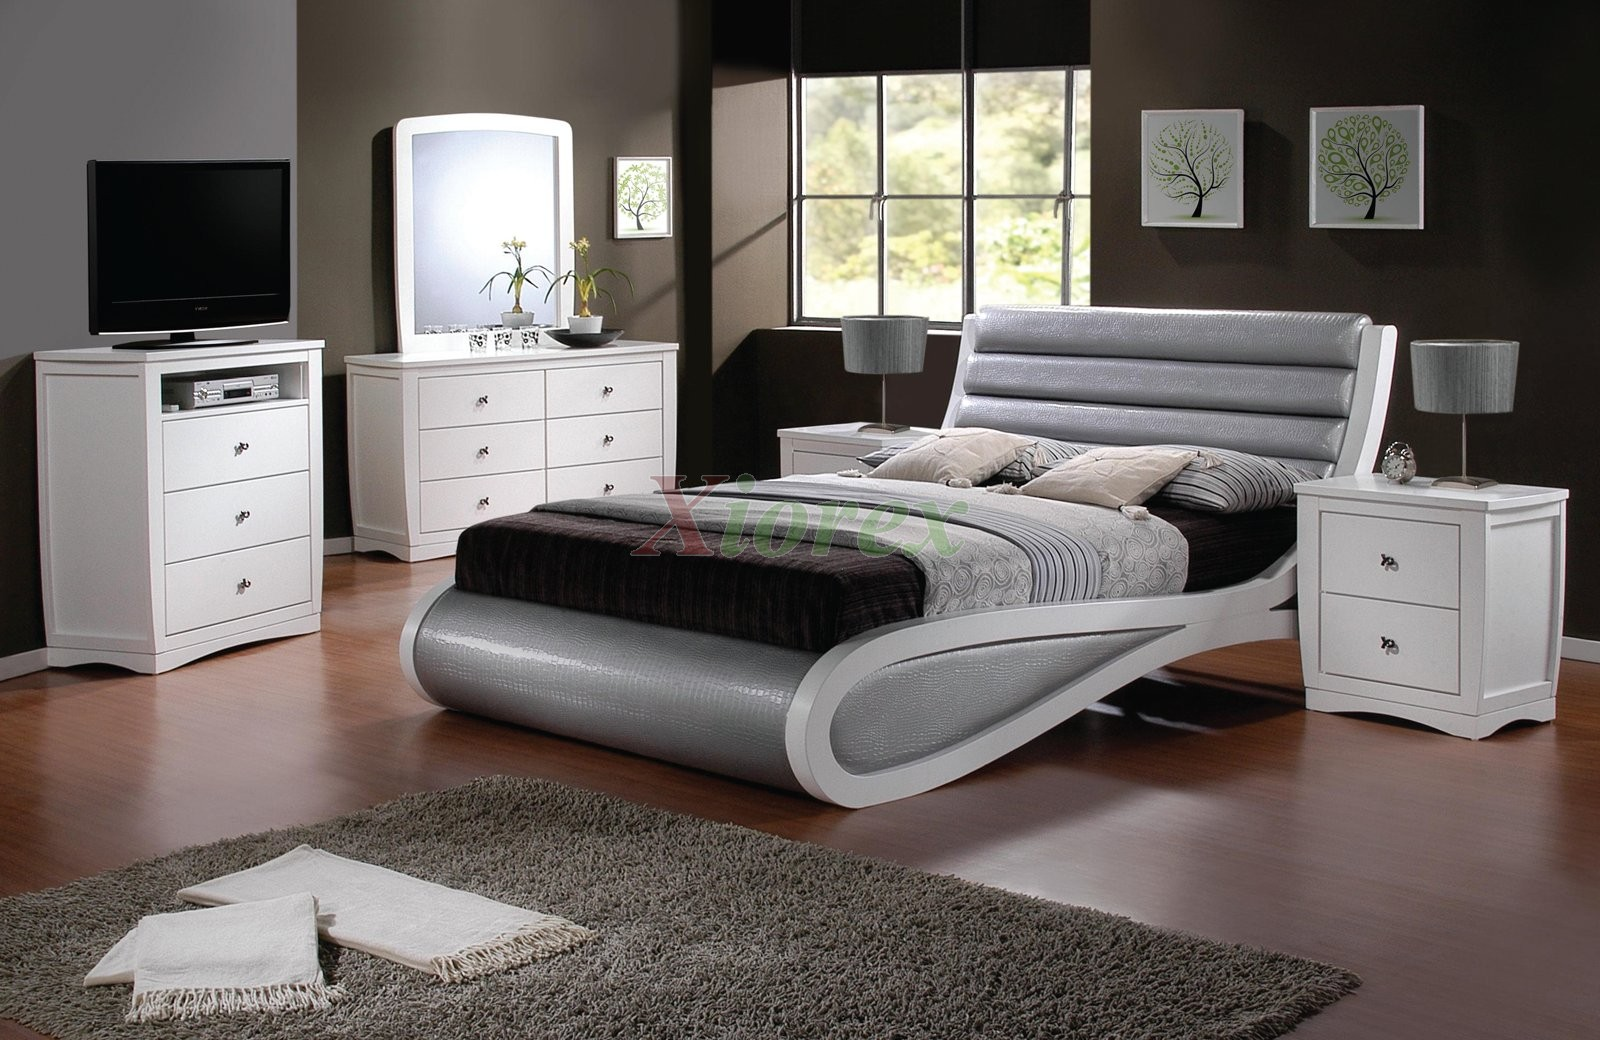 Modern bedroom furniture sets - Modern Bedroom Furniture Sets 9